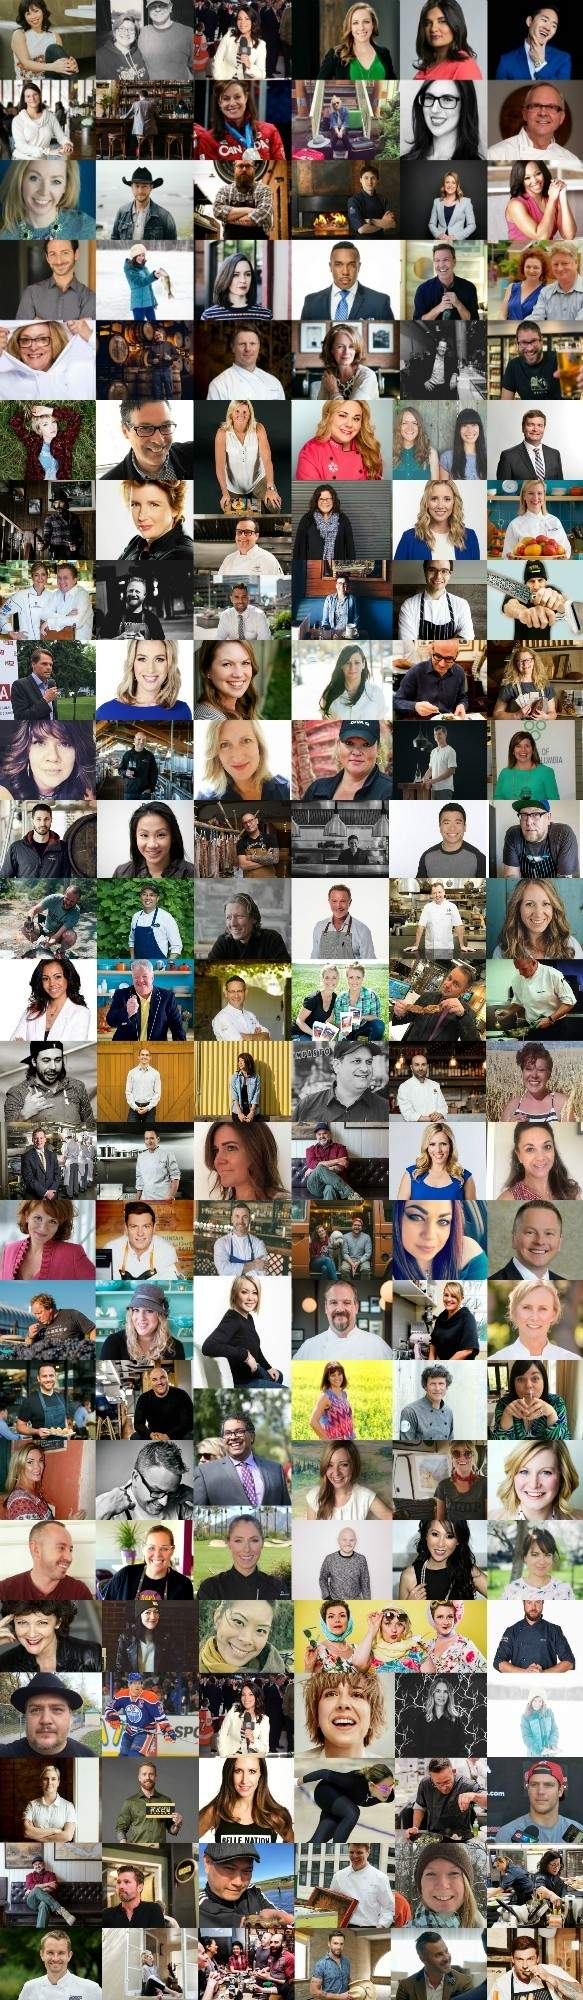 150 Canadians talk about Canada's food scene for Canada Day